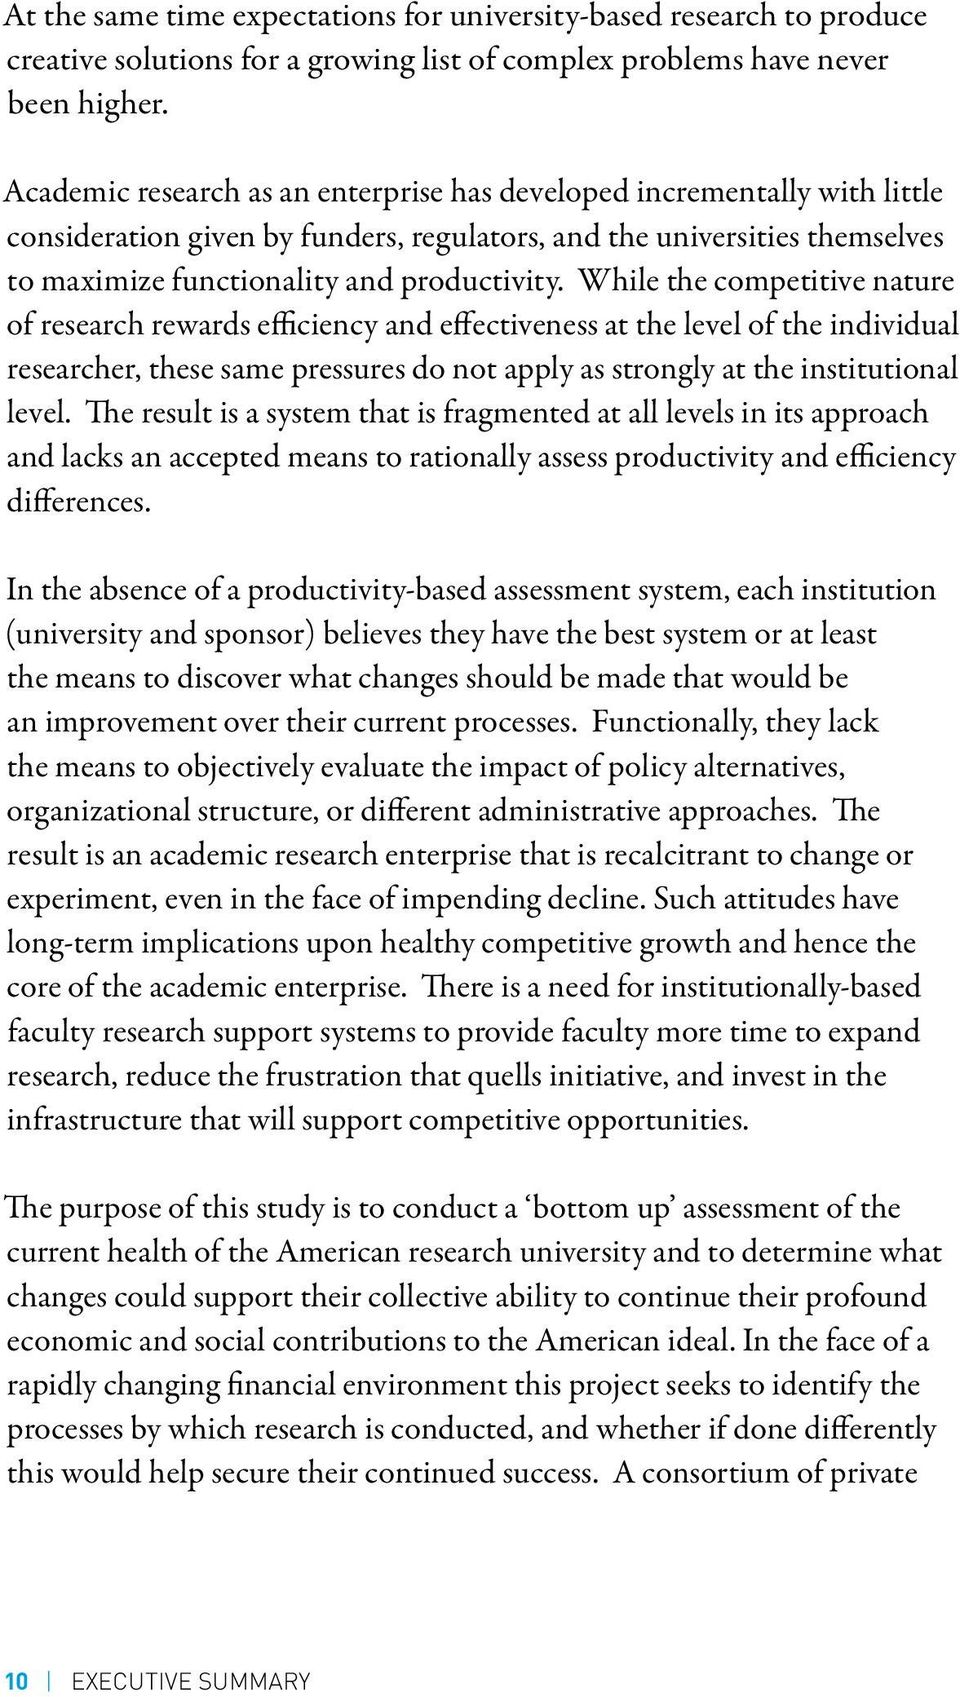 While the competitive nature of research rewards efficiency and effectiveness at the level of the individual researcher, these same pressures do not apply as strongly at the institutional level.